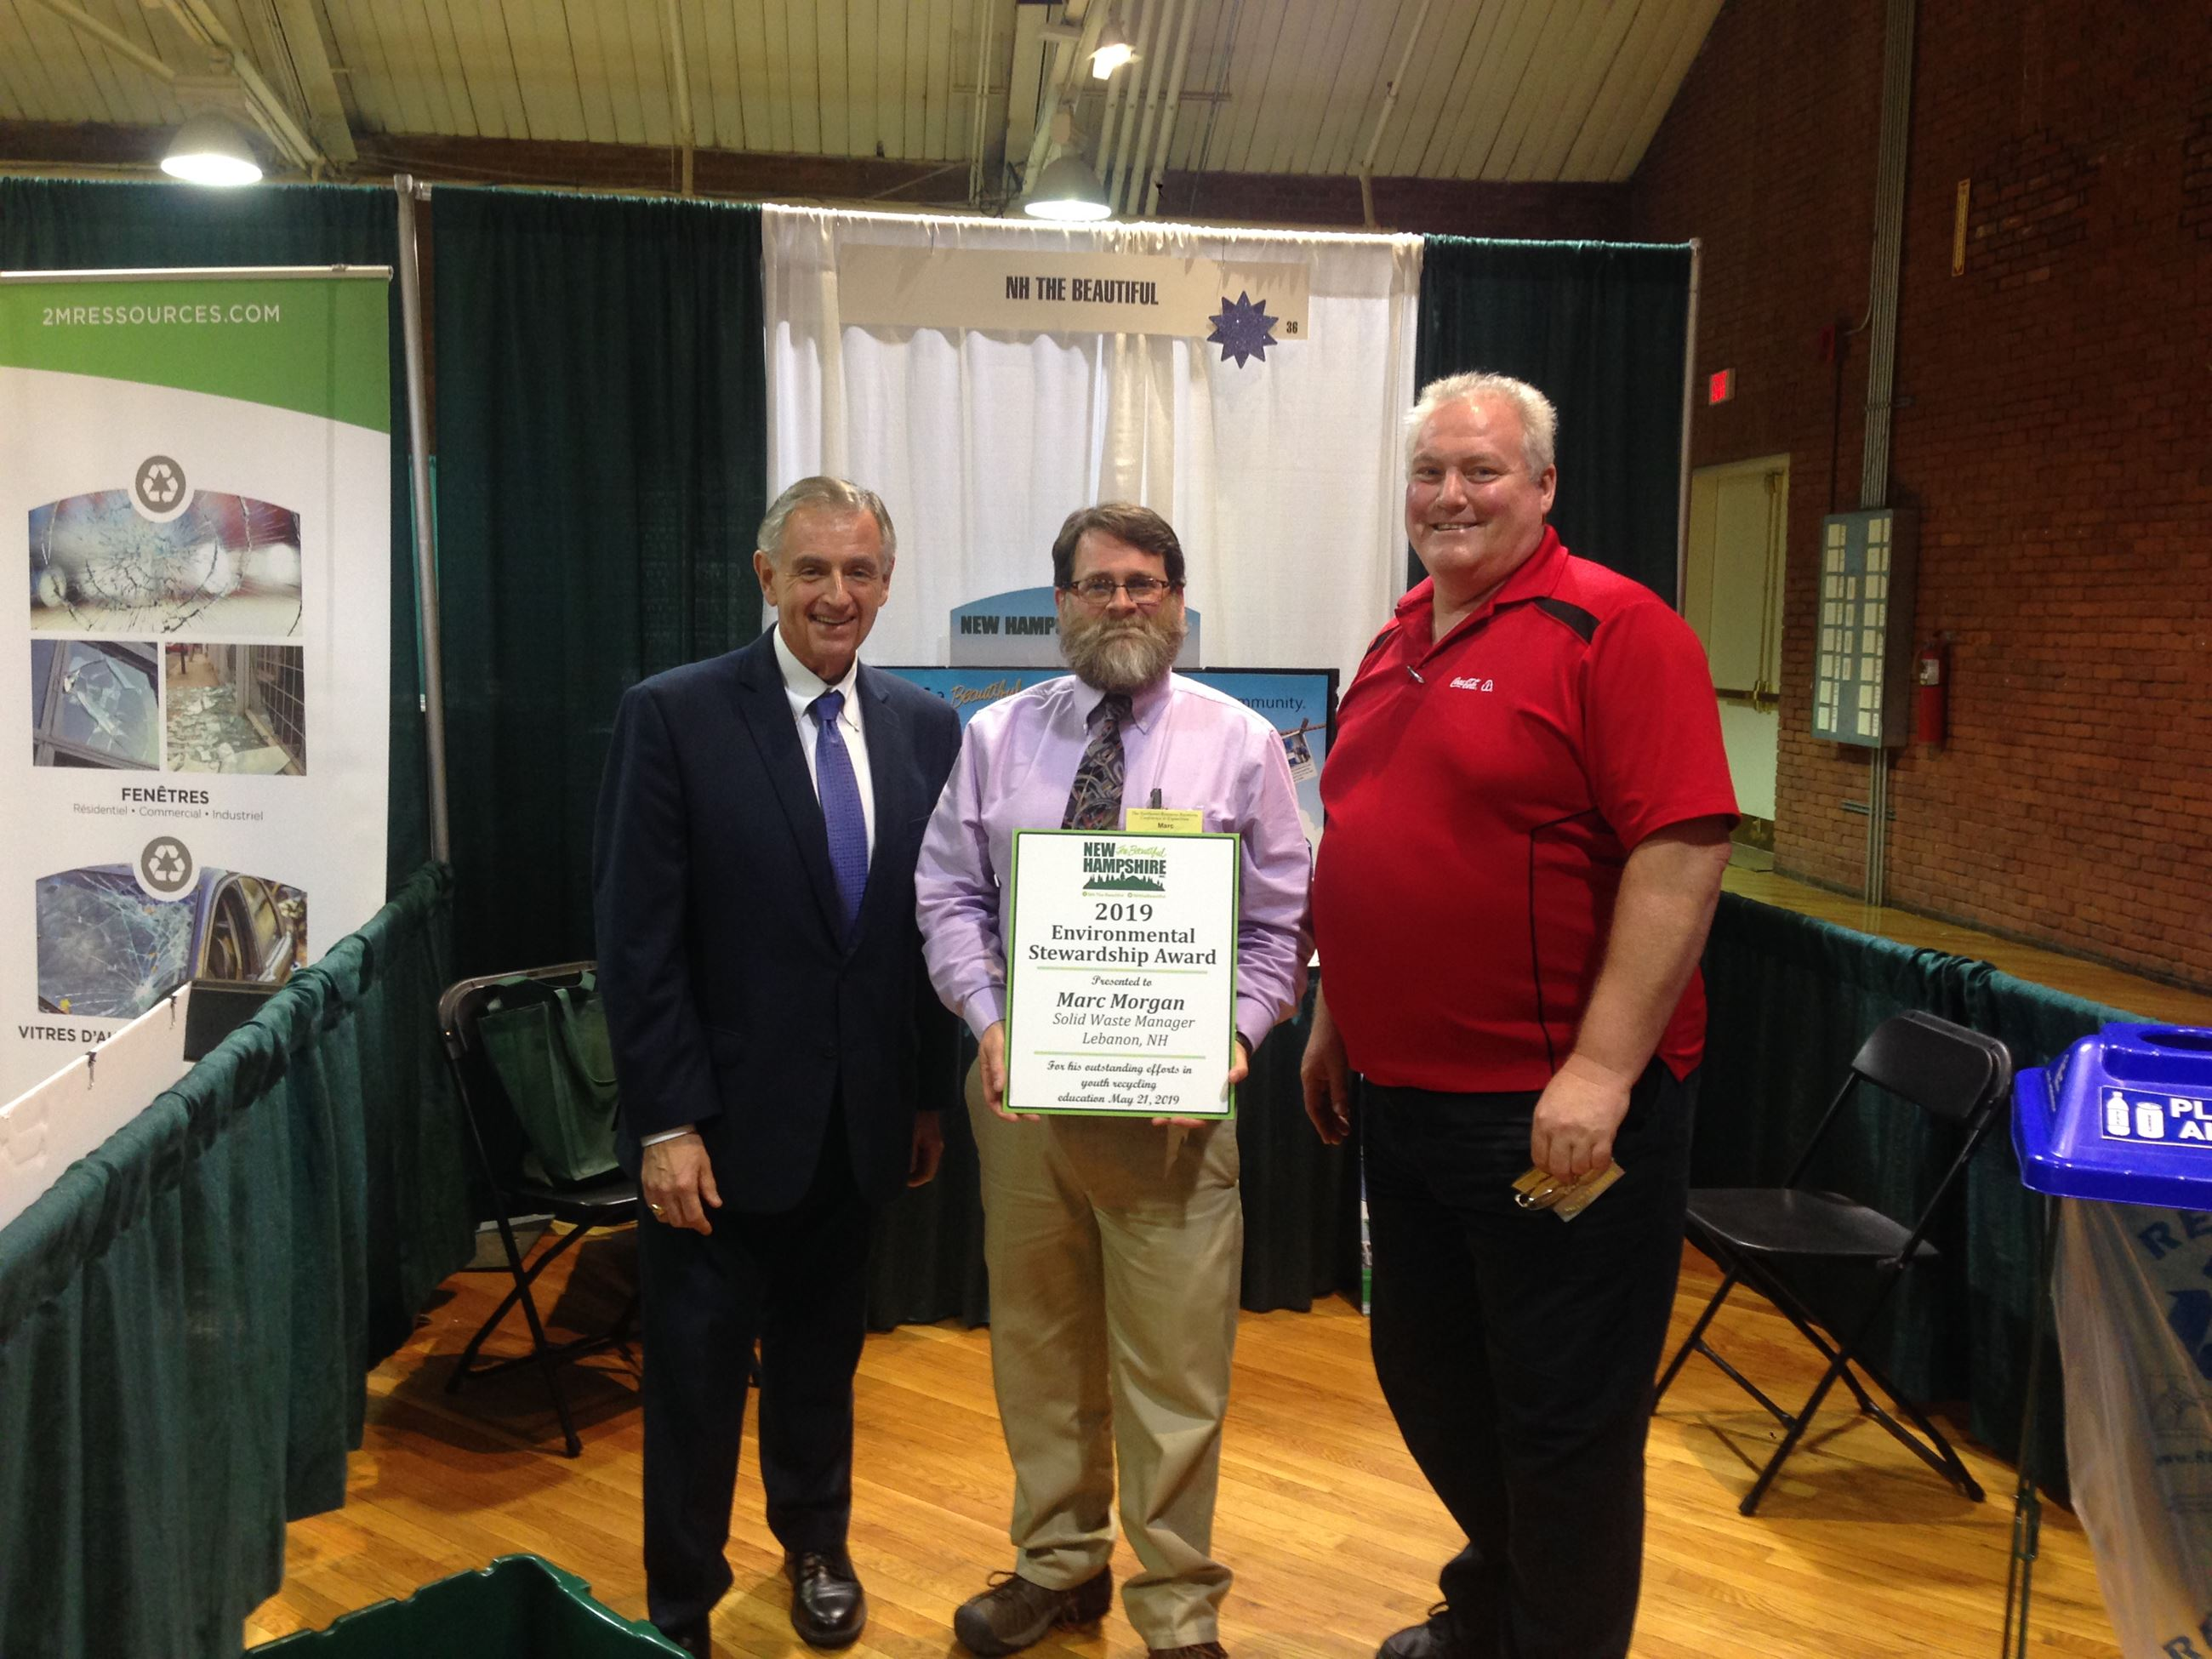 Marc Morgan receiving the 2019 Environmental Stewardship Award